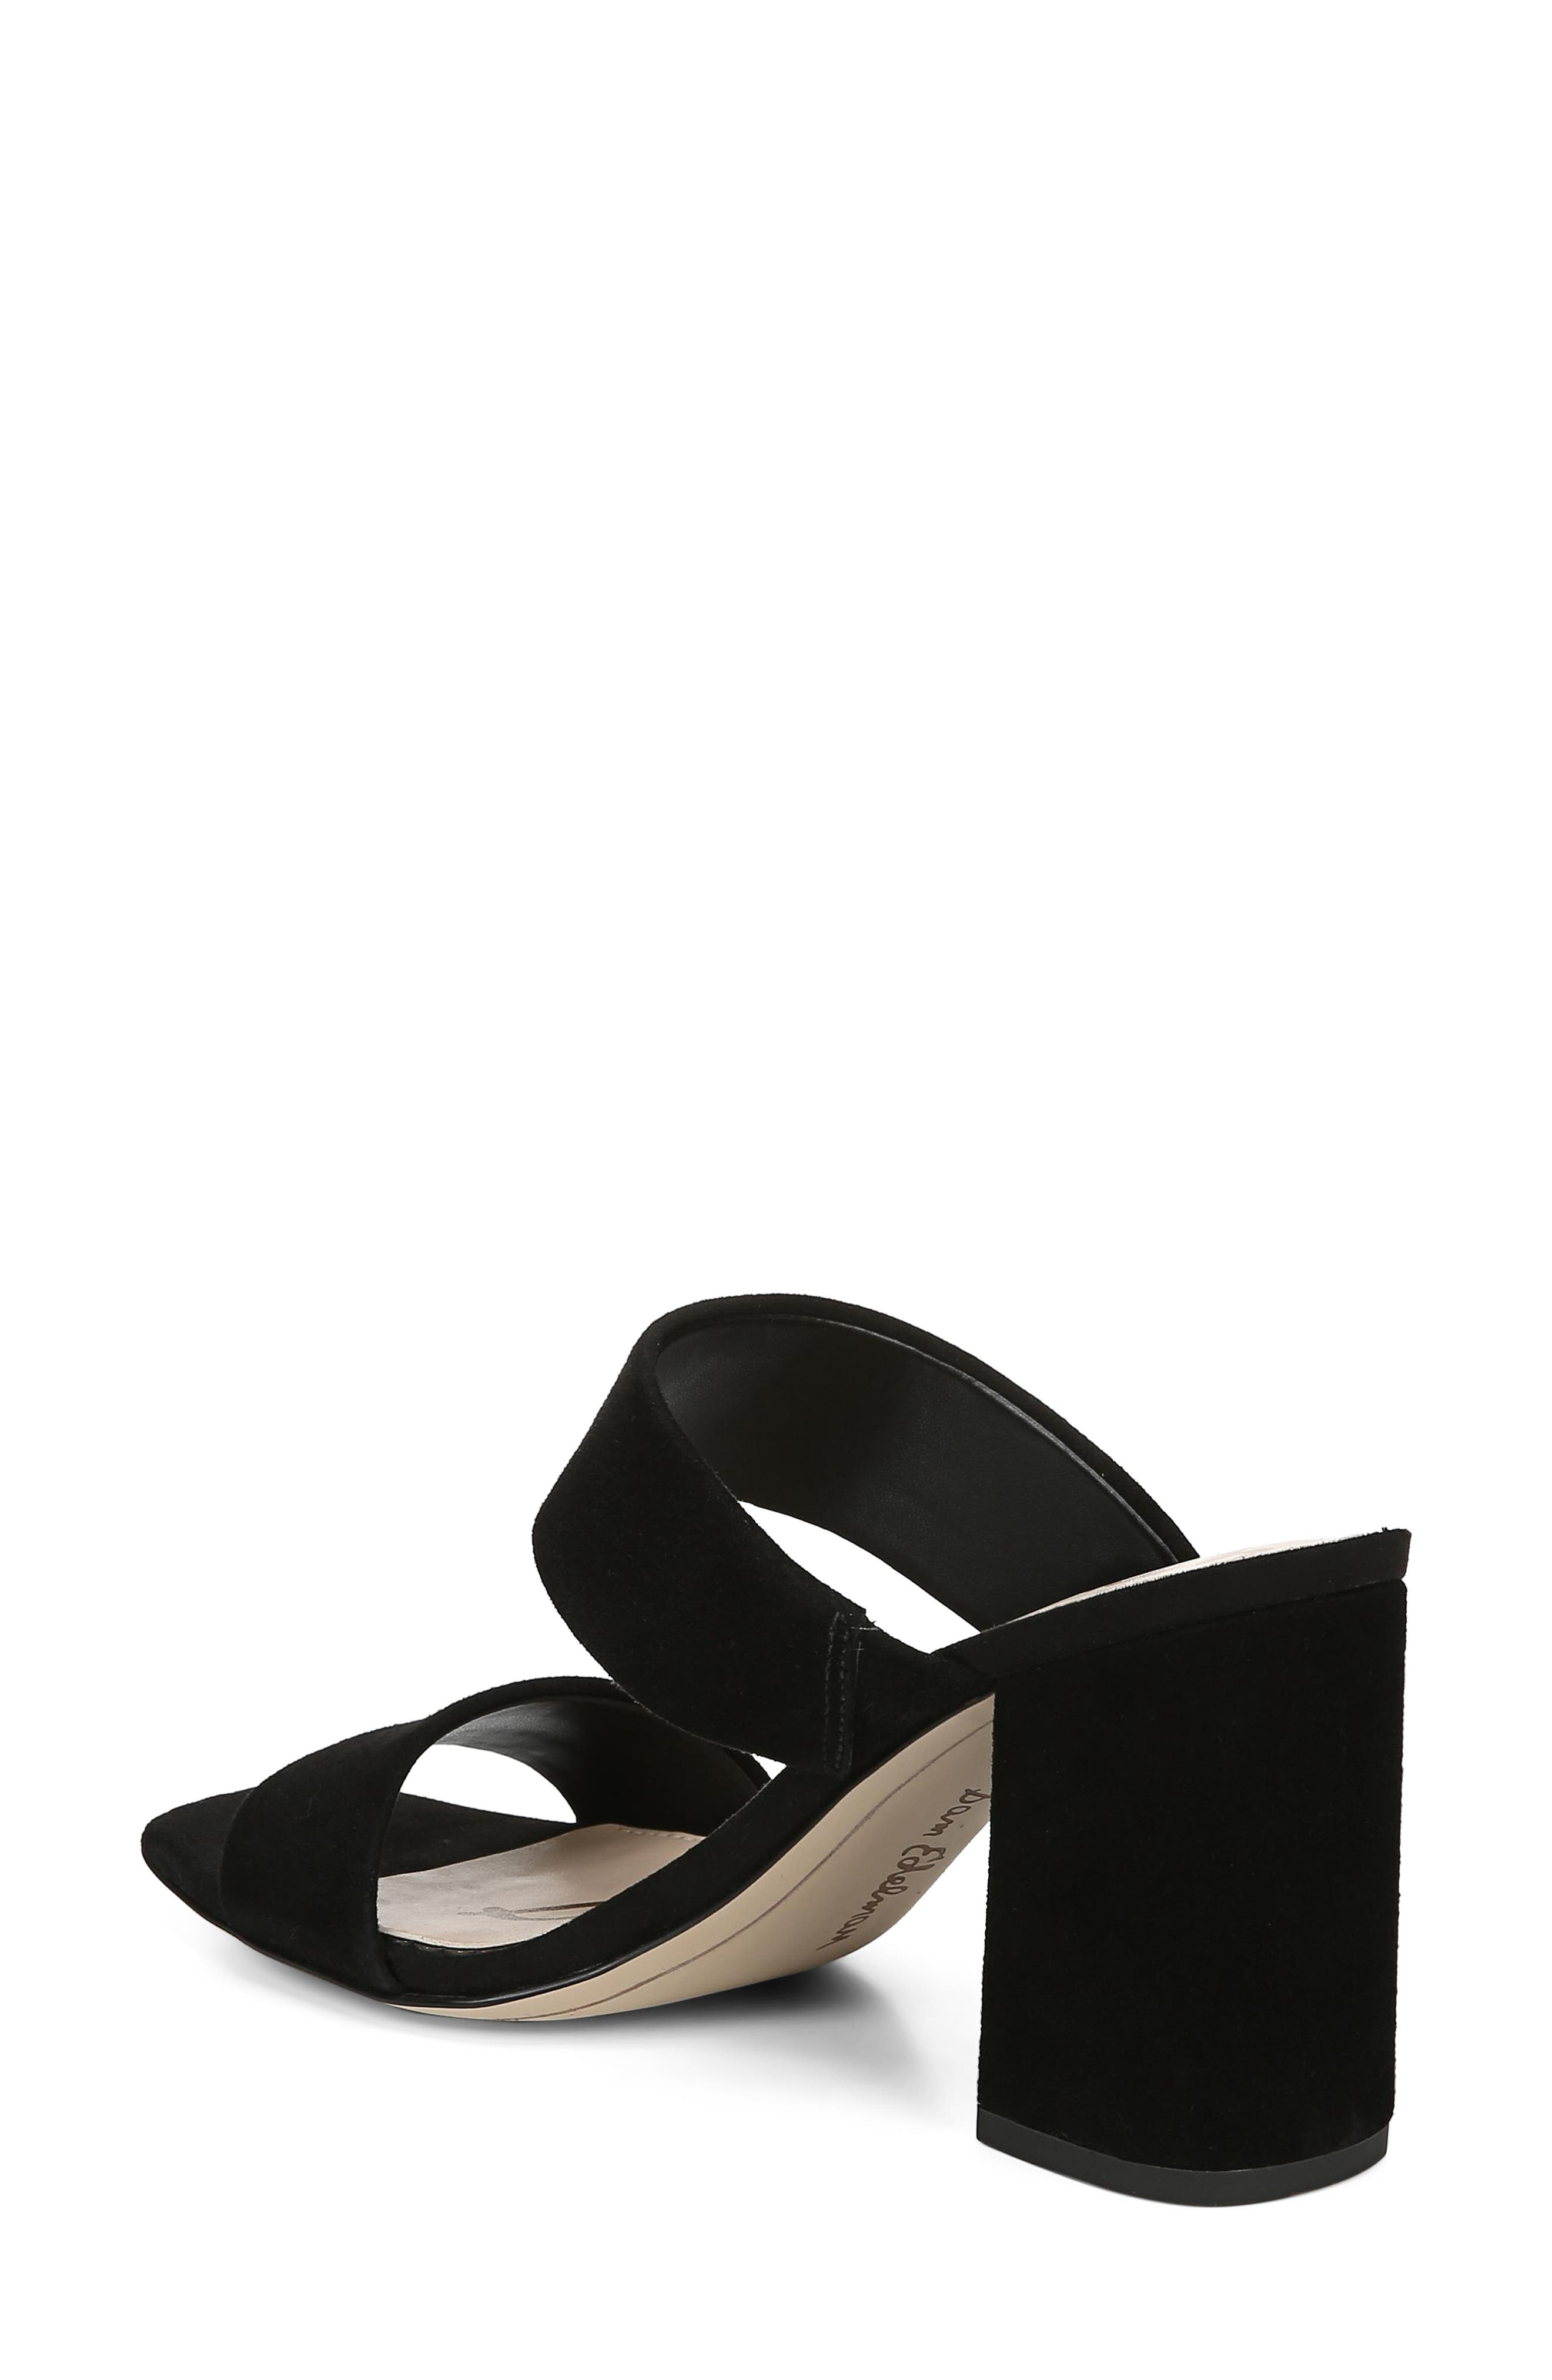 SAM EDELMAN, Delaney Sandal, Alternate thumbnail 2, color, BLACK SUEDE